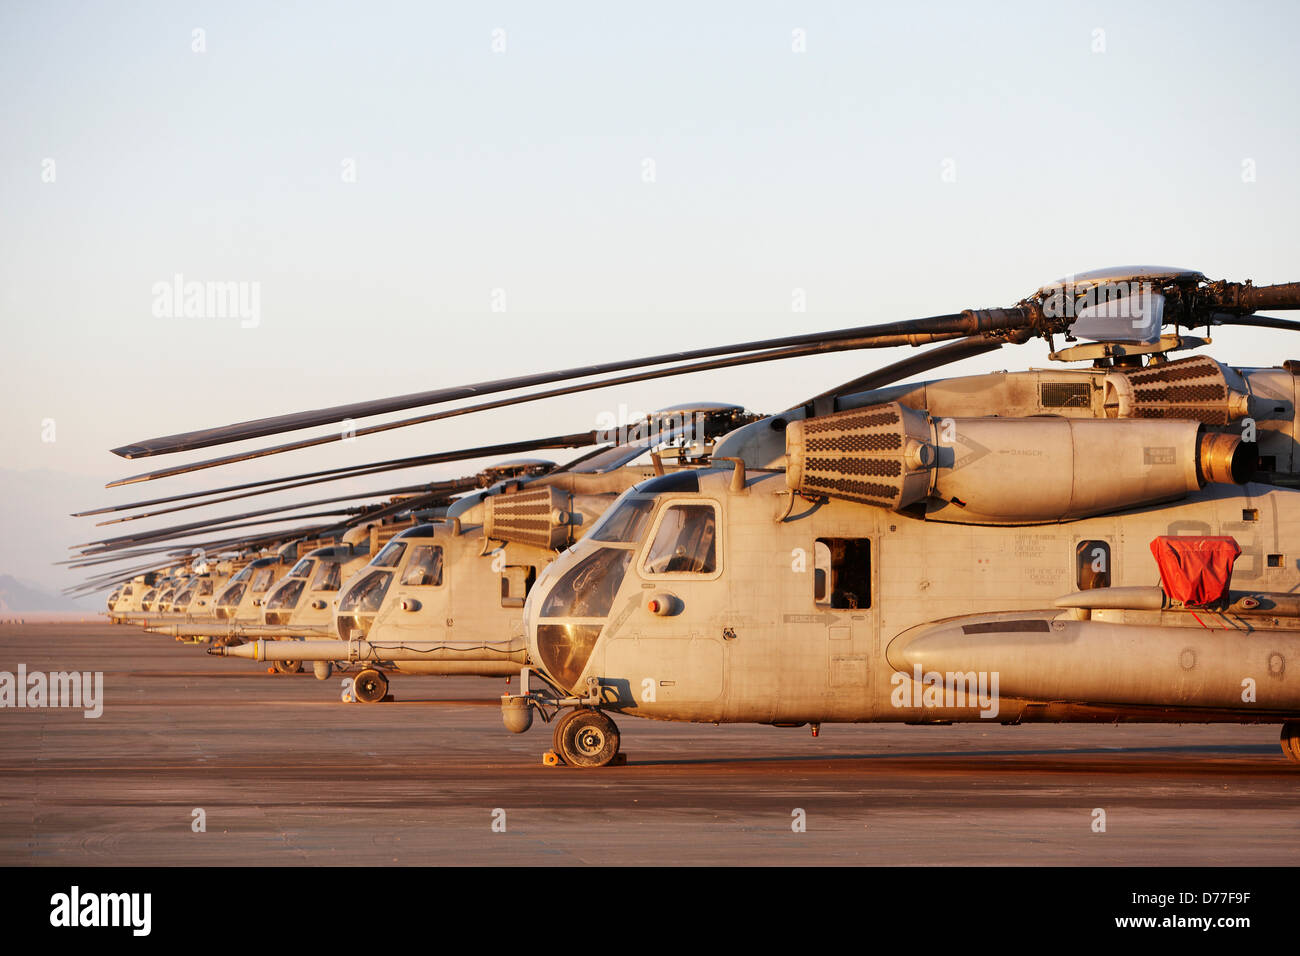 big horn helicopters with Ch 53 Super Sea Stallion on Faces Of The Firefighters moreover 4812 Delta B737 800 1 100 together with Ch 53 Super Sea Stallion further  together with Classic Air Tankers Enhance Rest Stop In Greybull Wyoming.